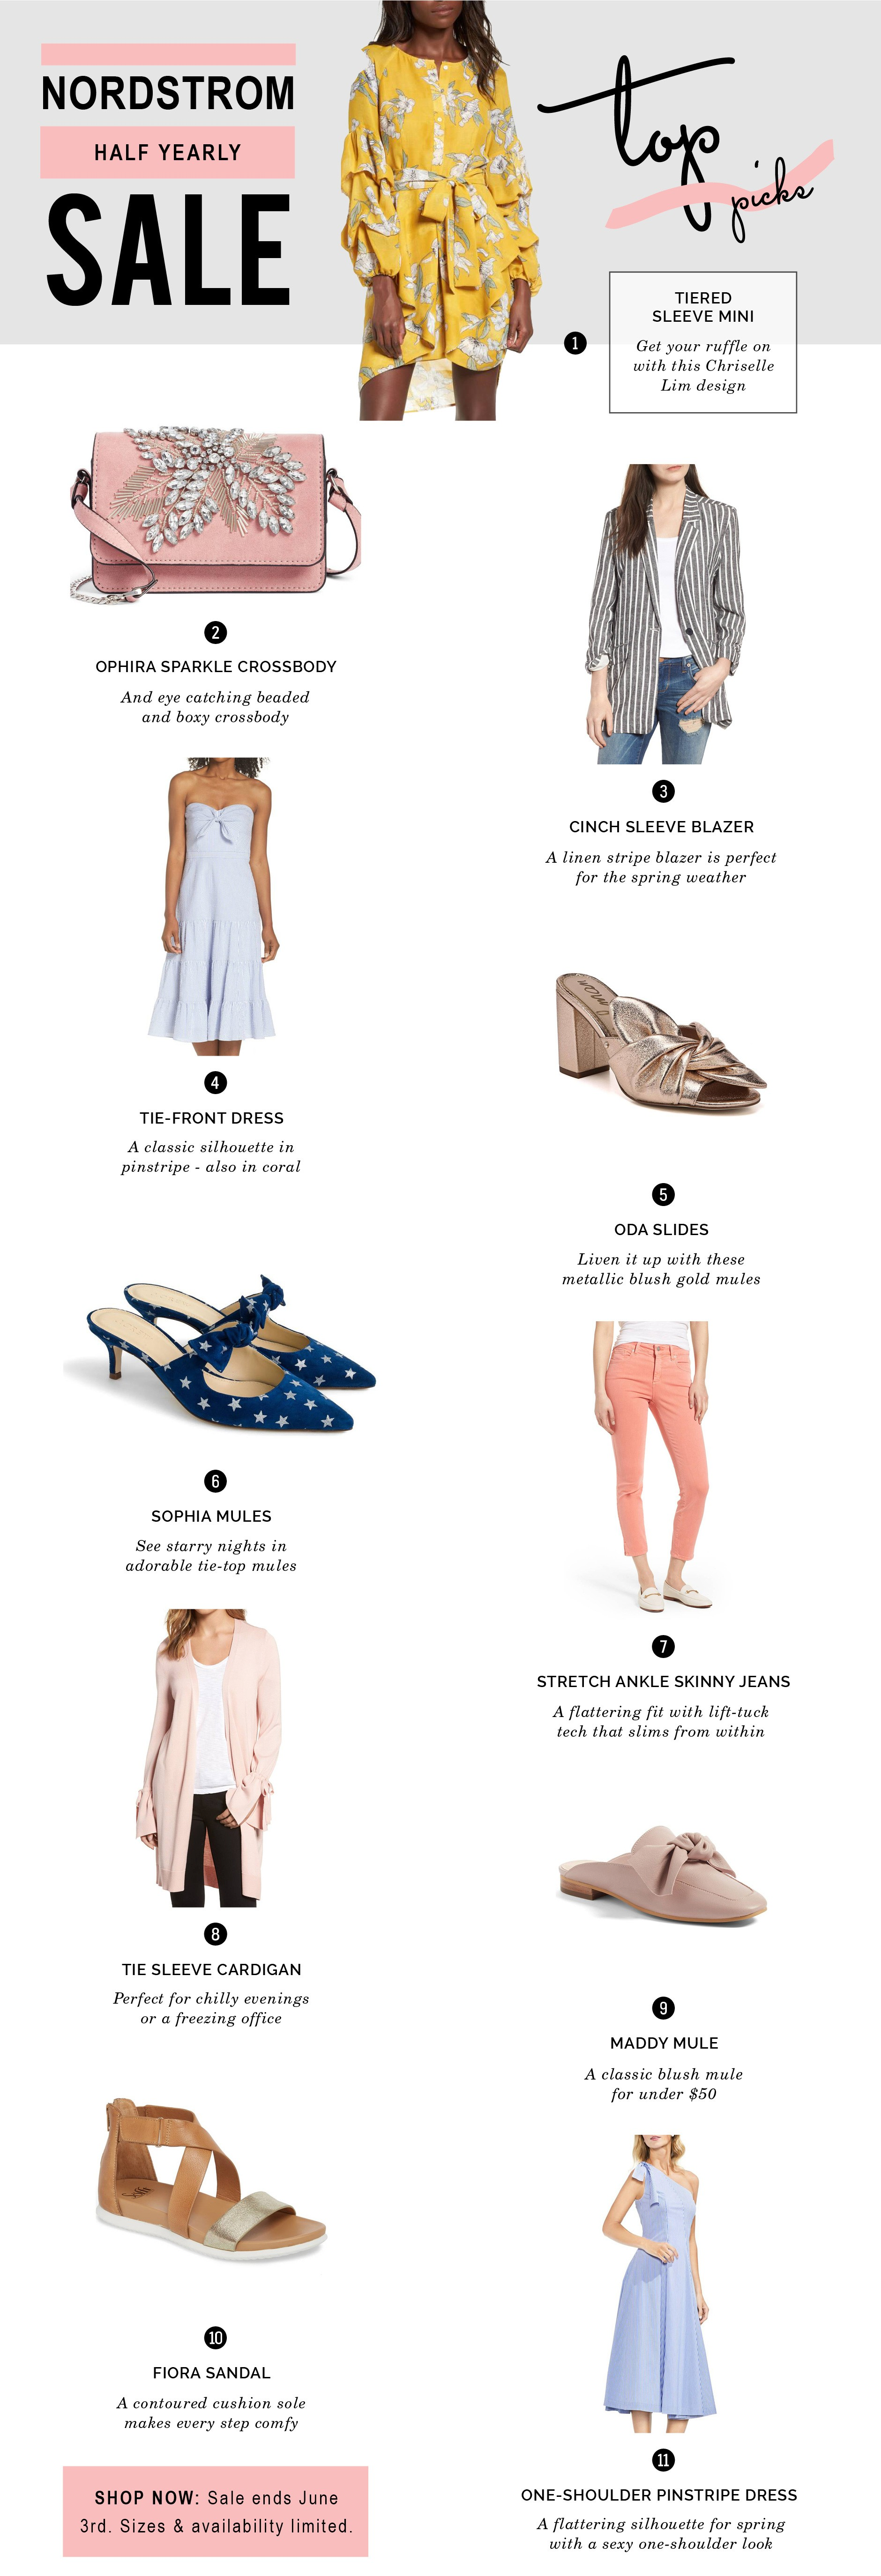 16fba883a6c The Nordstrom Half Yearly Sale is here. Find awesome deals on spring styles  at up to 40% off. I ve scoured the entire sale so you don t have to. Shop  my top ...